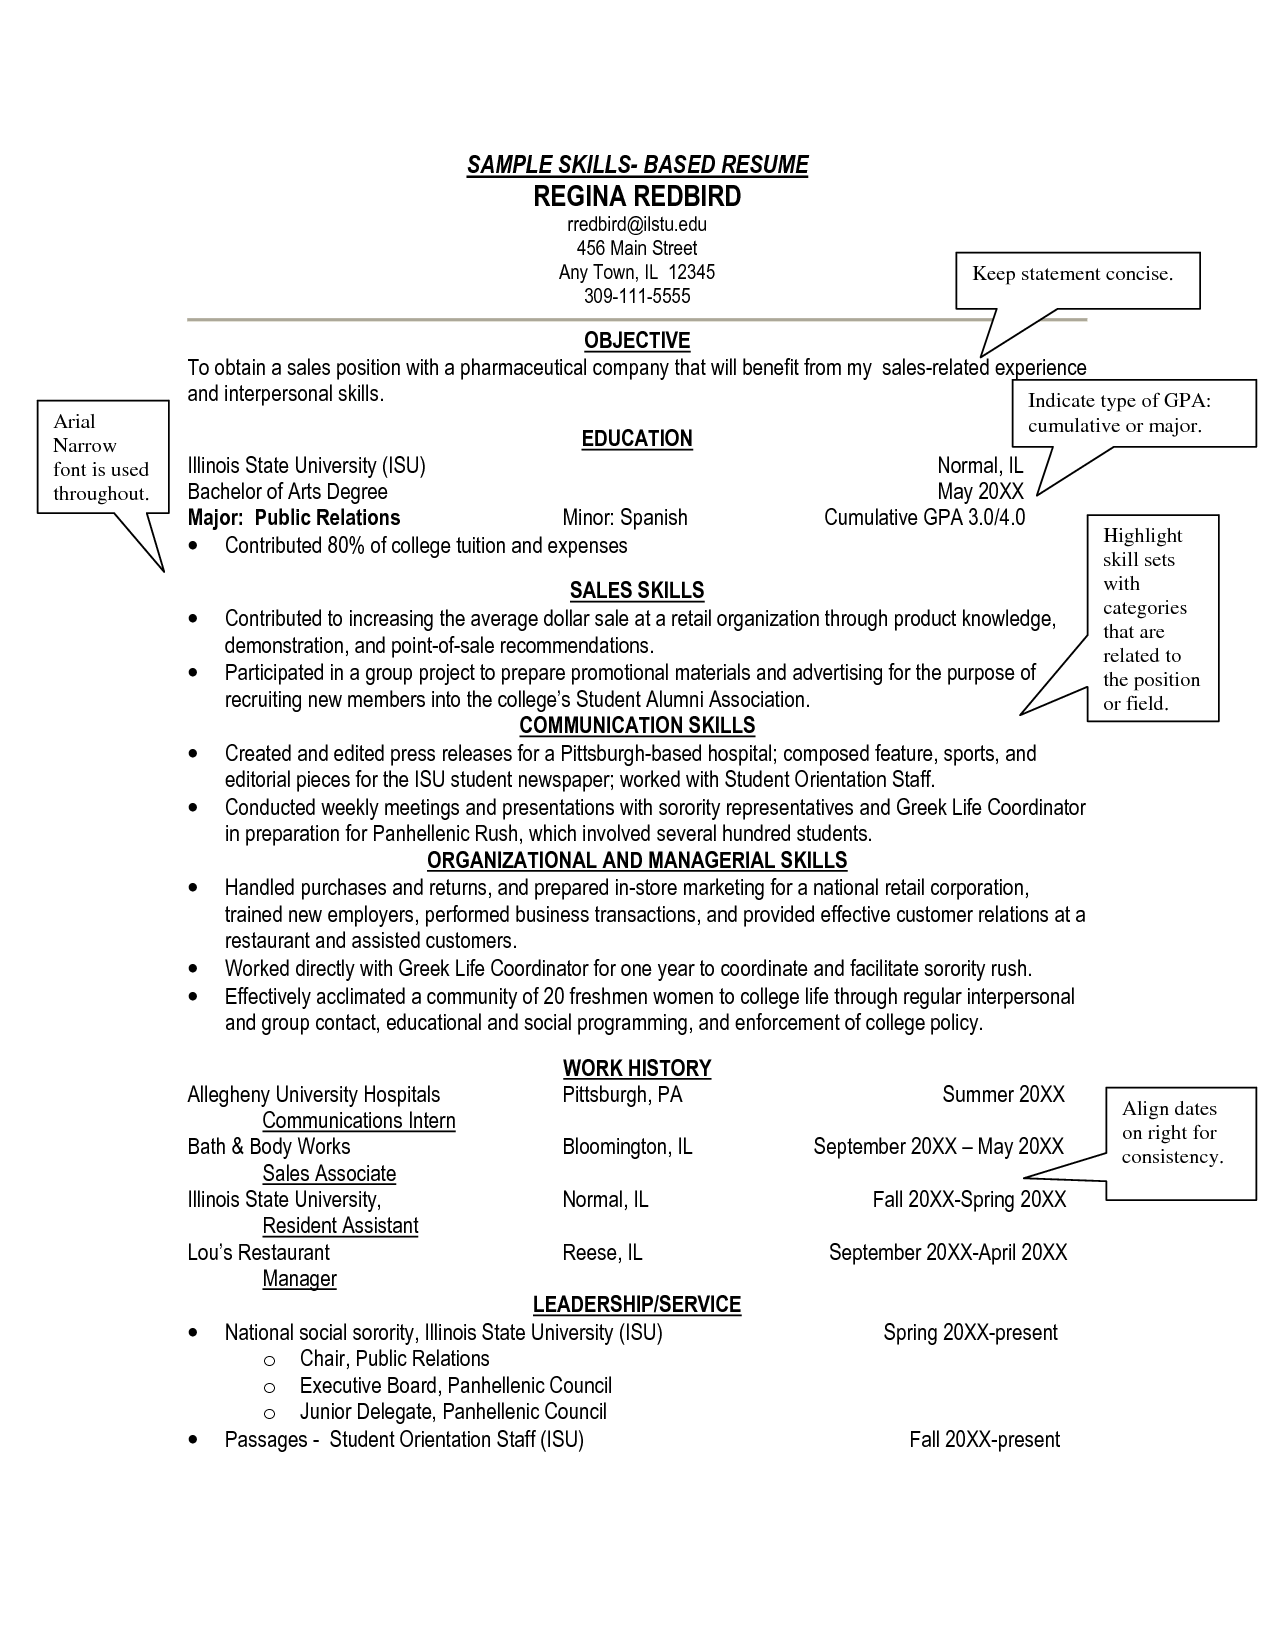 Areas Of Expertise Resume Examples Captivating Sample Skills Resume Template  Interview  Pinterest  Sample .